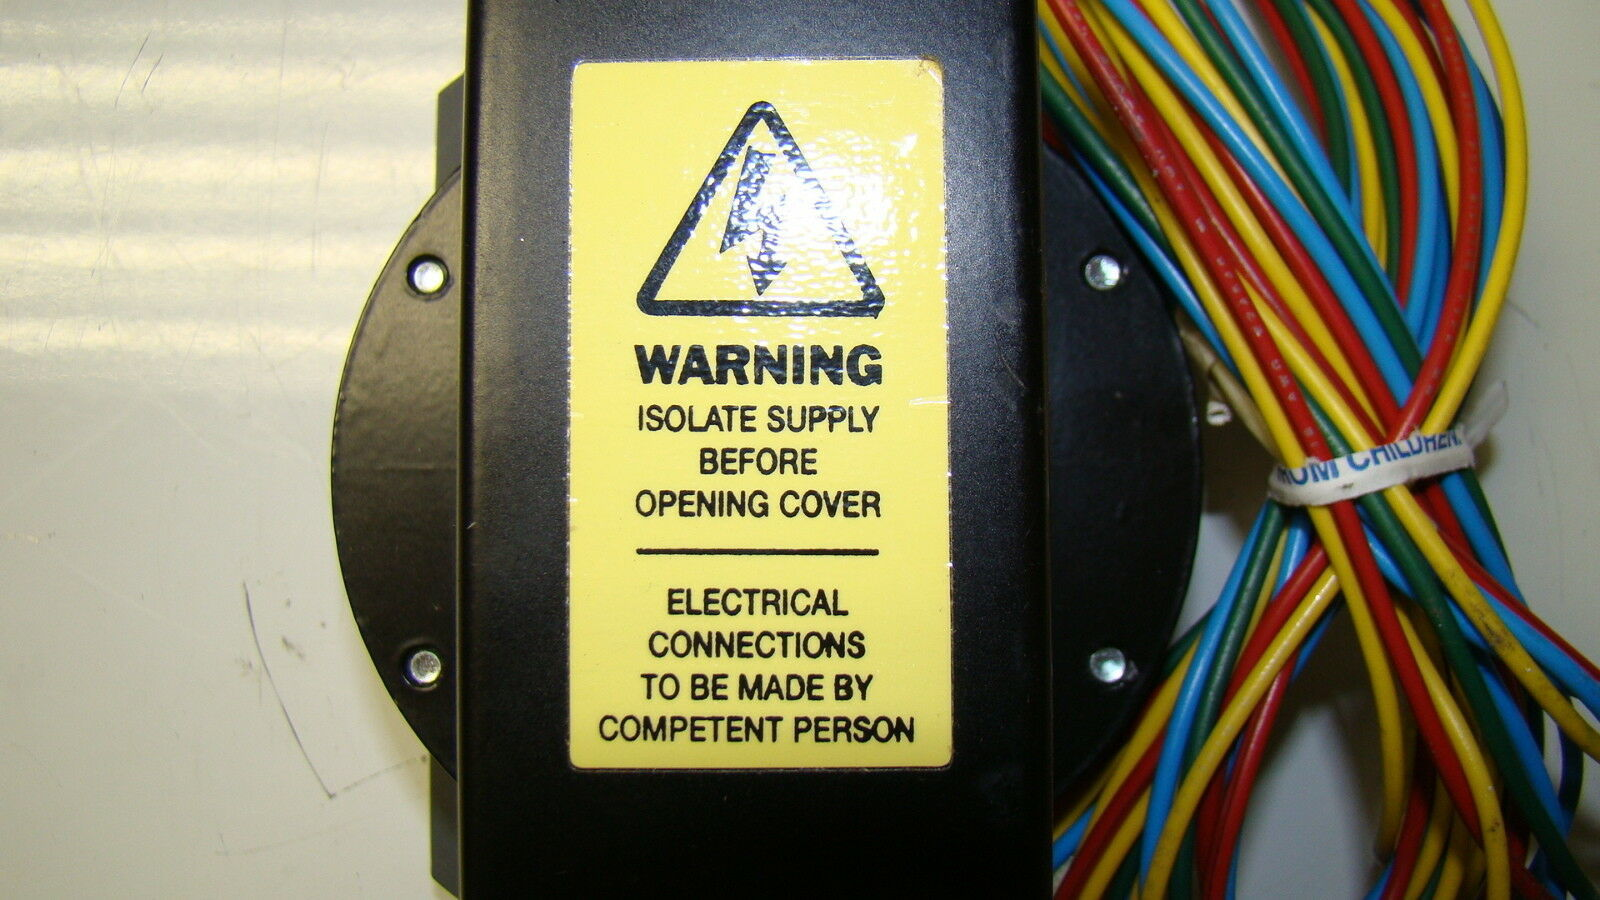 Bailey And Mackey Pressure Switch Wiring Diagram Free Download Pumptrol Ltd 250v 56853 027 Ebay At